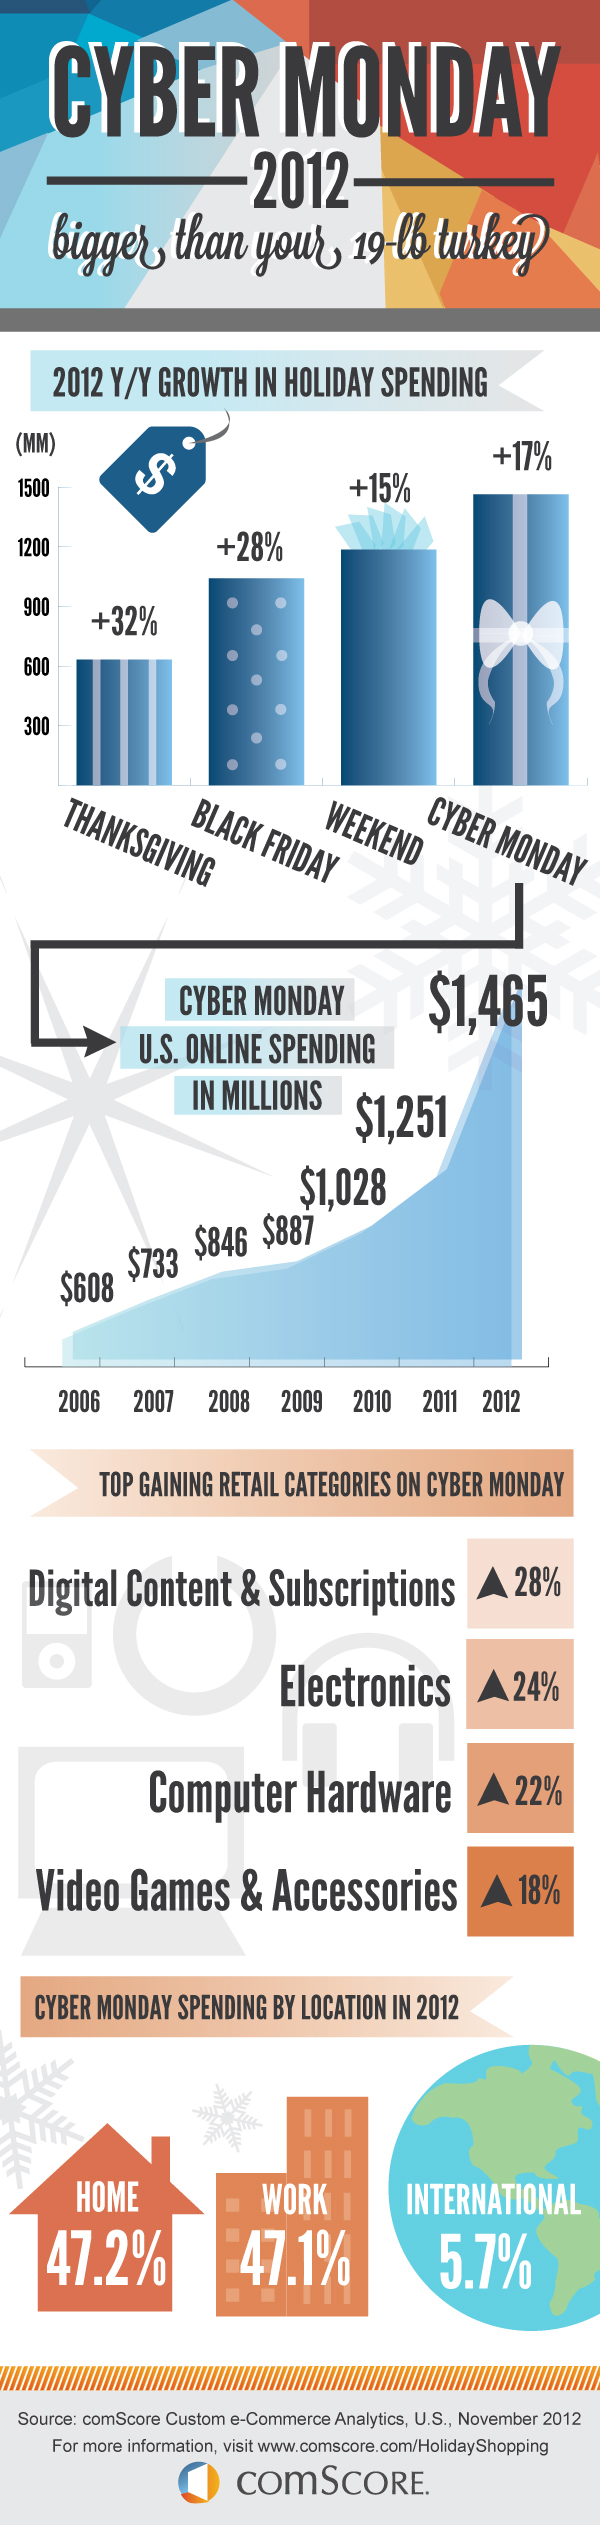 Cyber Monday by the Numbers